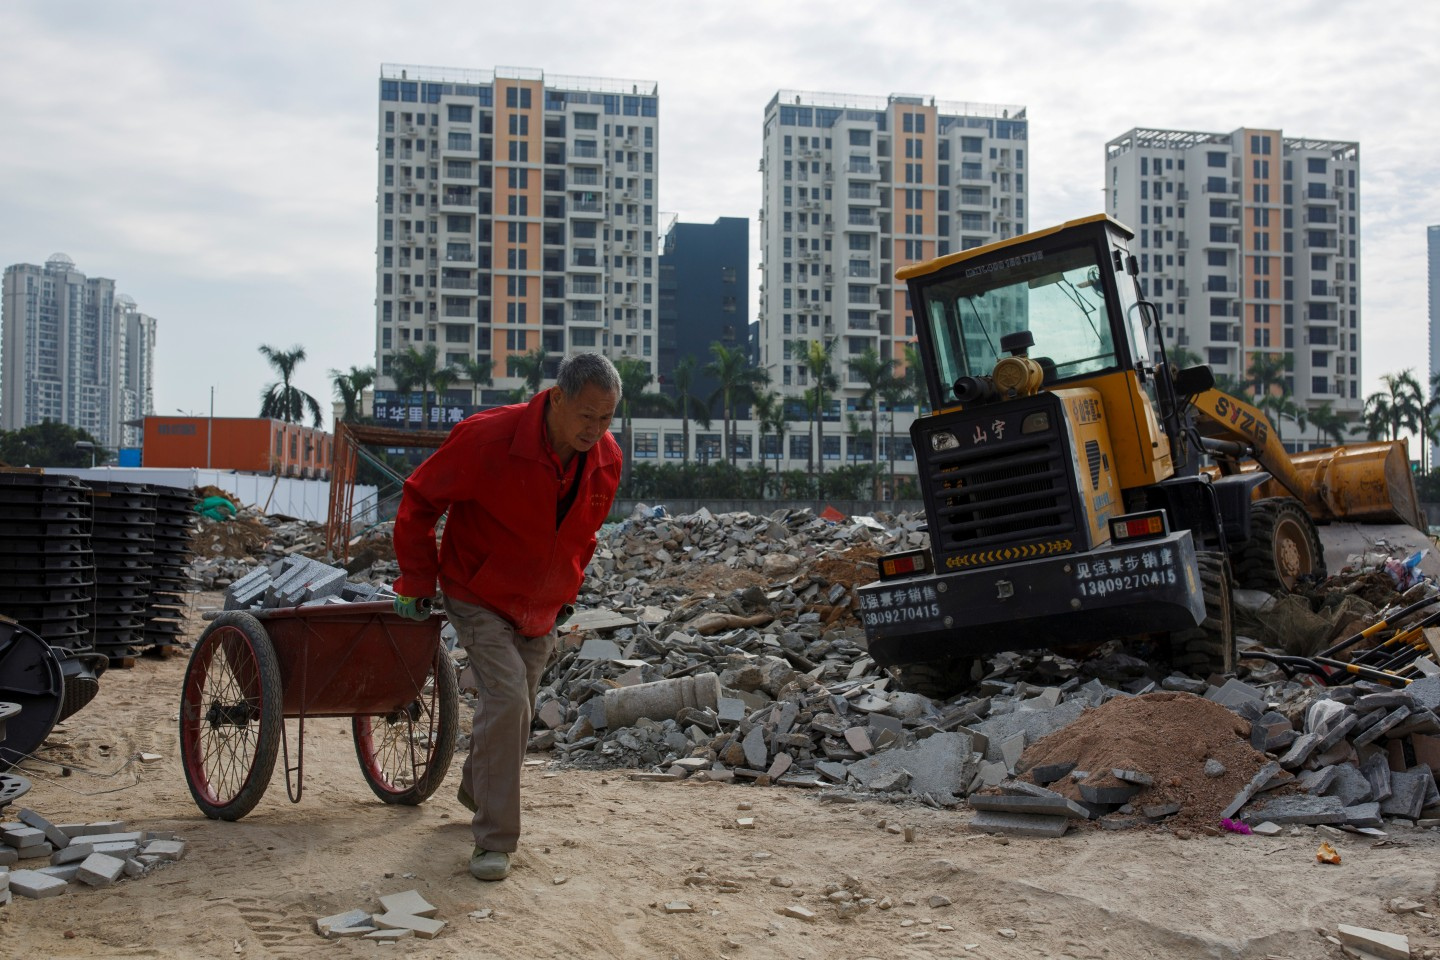 Many people who live in high-end residential districts have already attained or exceeded middle class status in material life, but remain culturally impoverished. This file photo shows a worker pulling a cart at a construction site near new apartment high-rise buildings in the Shekou area of Shenzhen, Guangdong Province, China, on December 13, 2018. (Thomas Peter/File Photo/Reuters)